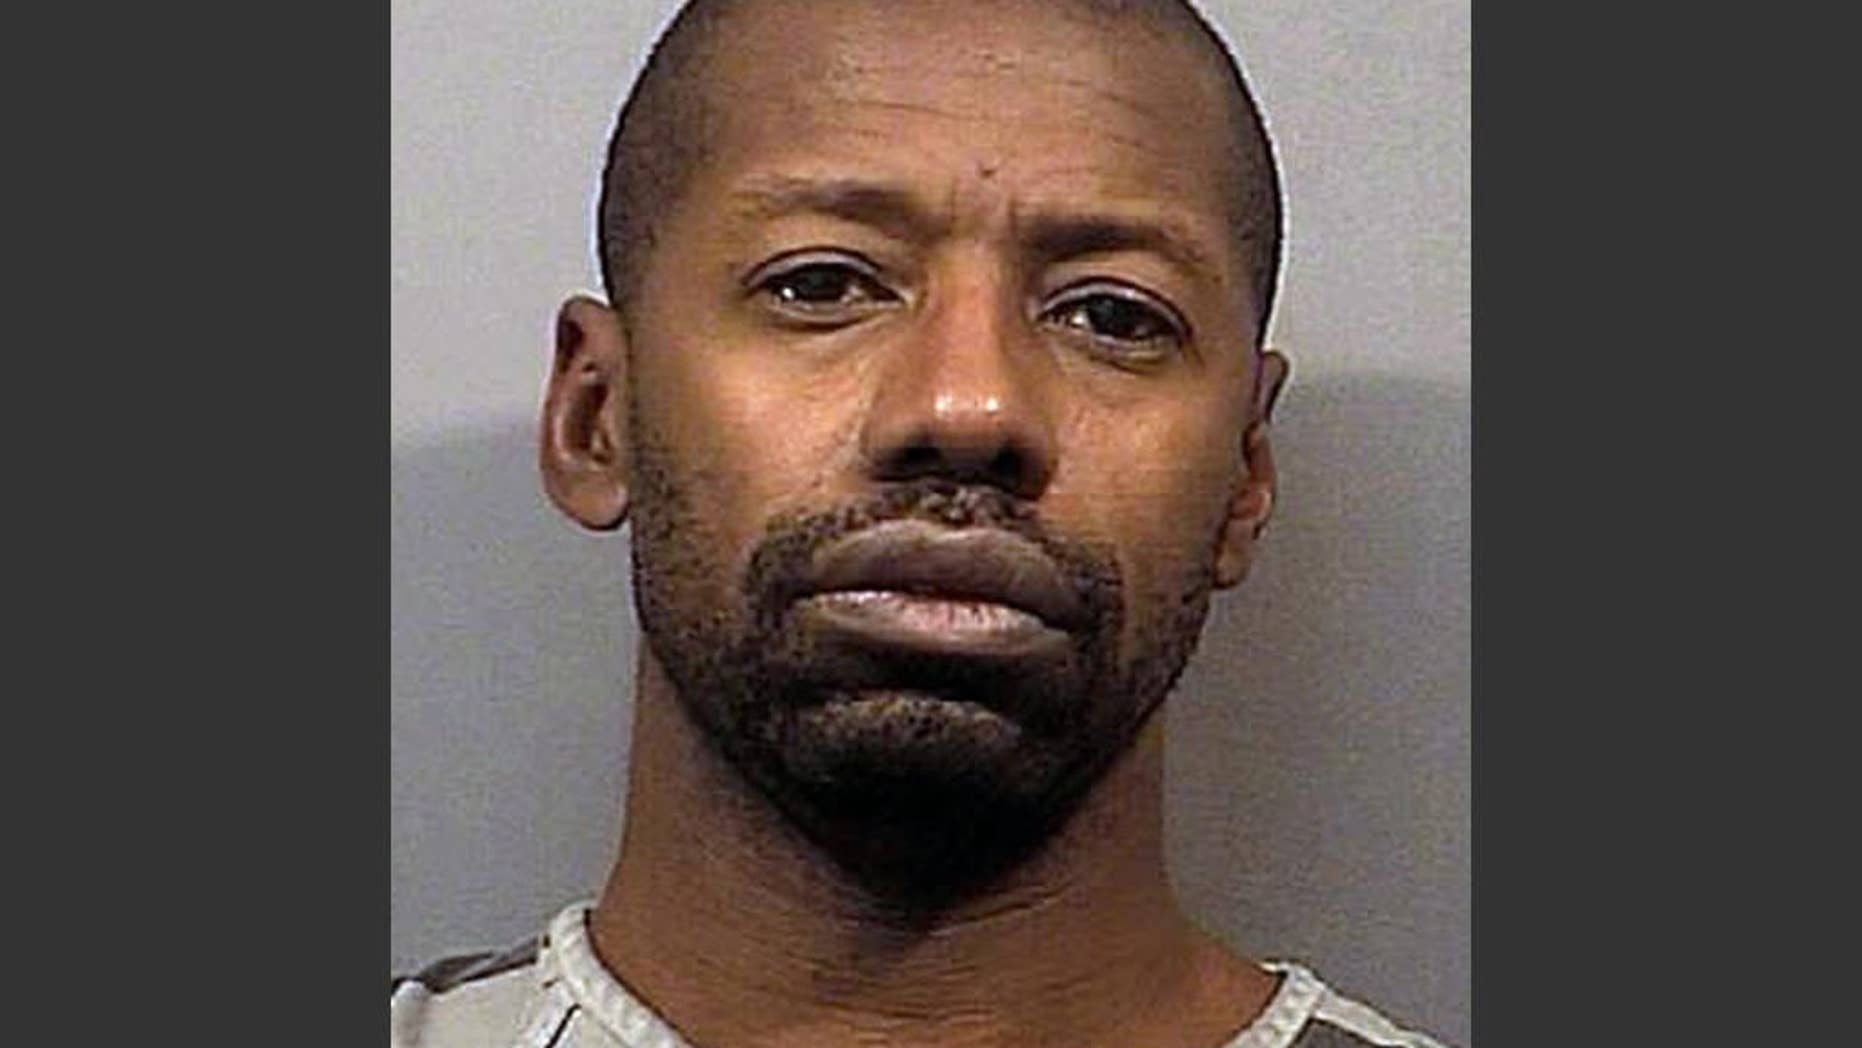 This undated photo provided by the Lake County Sheriff's office shows Darren Vann. Vann, 43, of Gary, Ind., was charged Monday, Oct. 20, 2014 in the death of 19-year-old Afrikka Hardy, whose body was found Friday night at a Motel 6 in nearby Hammond, Ind. Hammond Police Chief John Doughty says Vann confessed to Hardy's slaying and directed police to six bodies in Gary. (AP Photo/Lake County Sheriff's Office)